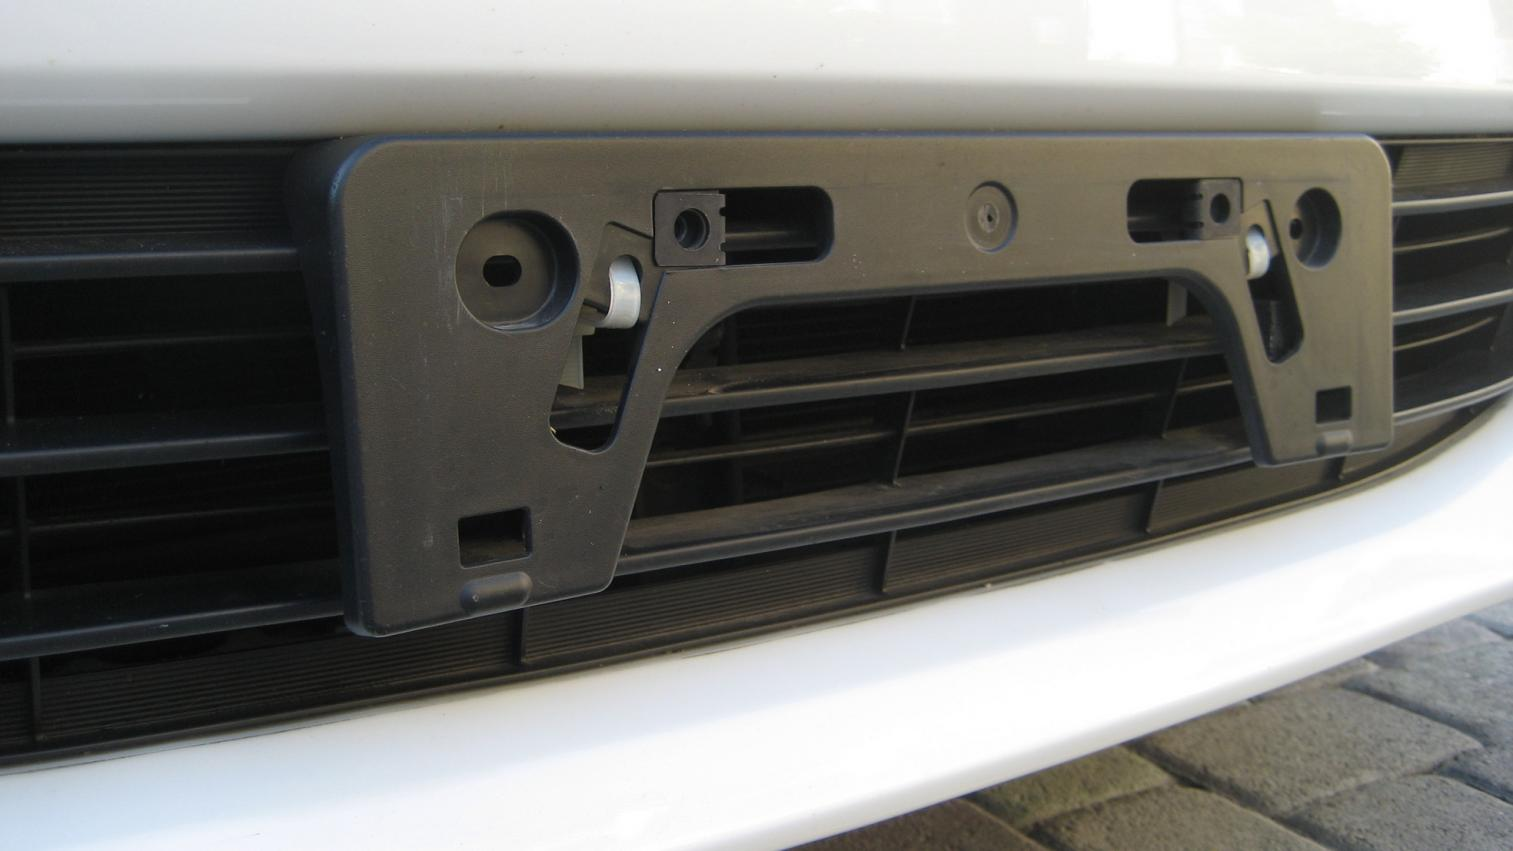 How to install front license plate bracket